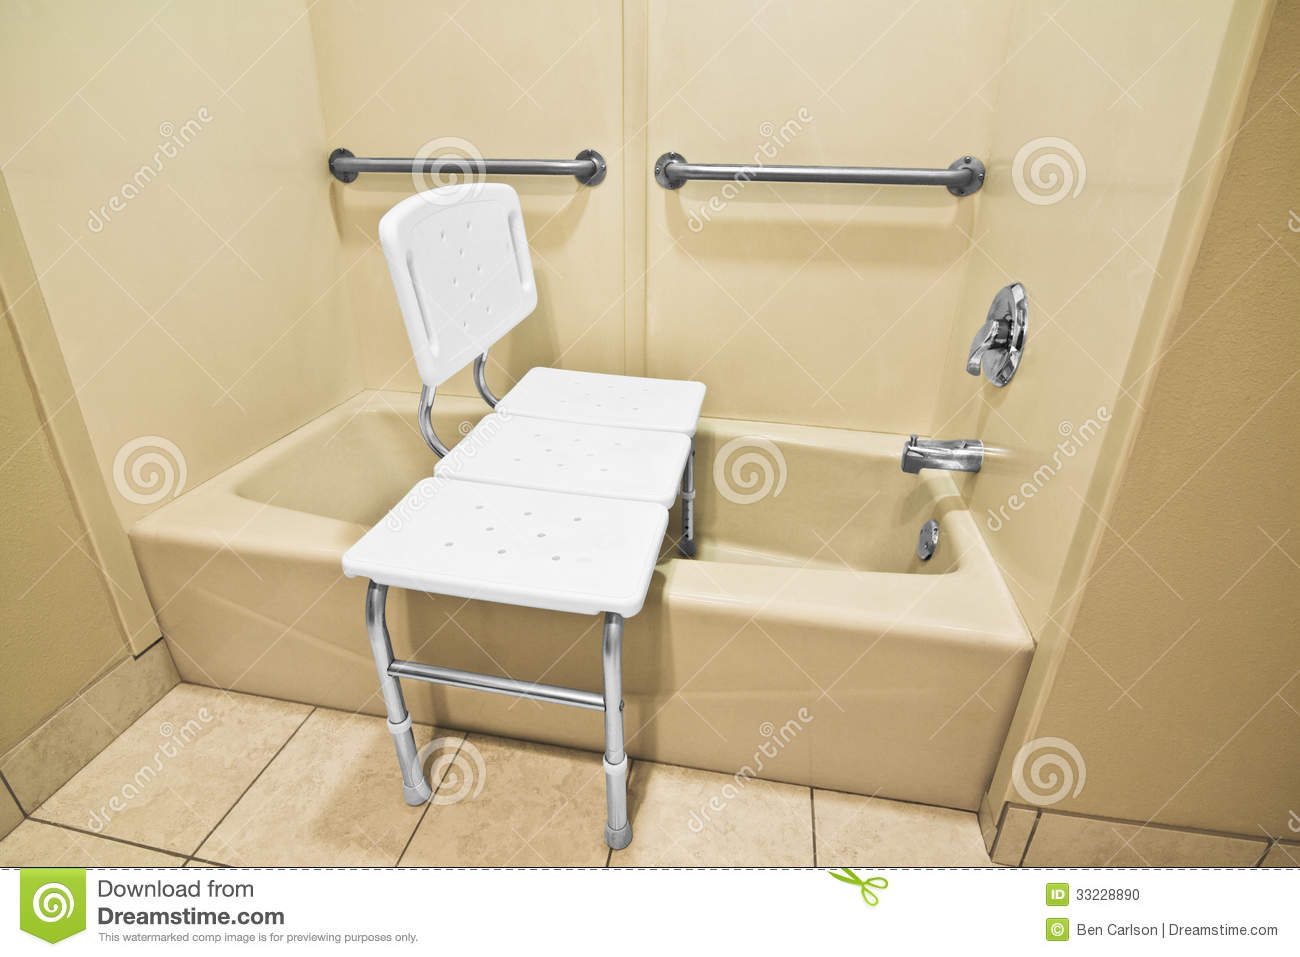 Handicap Bathing Chair stock photo. Image of faucet, handicap